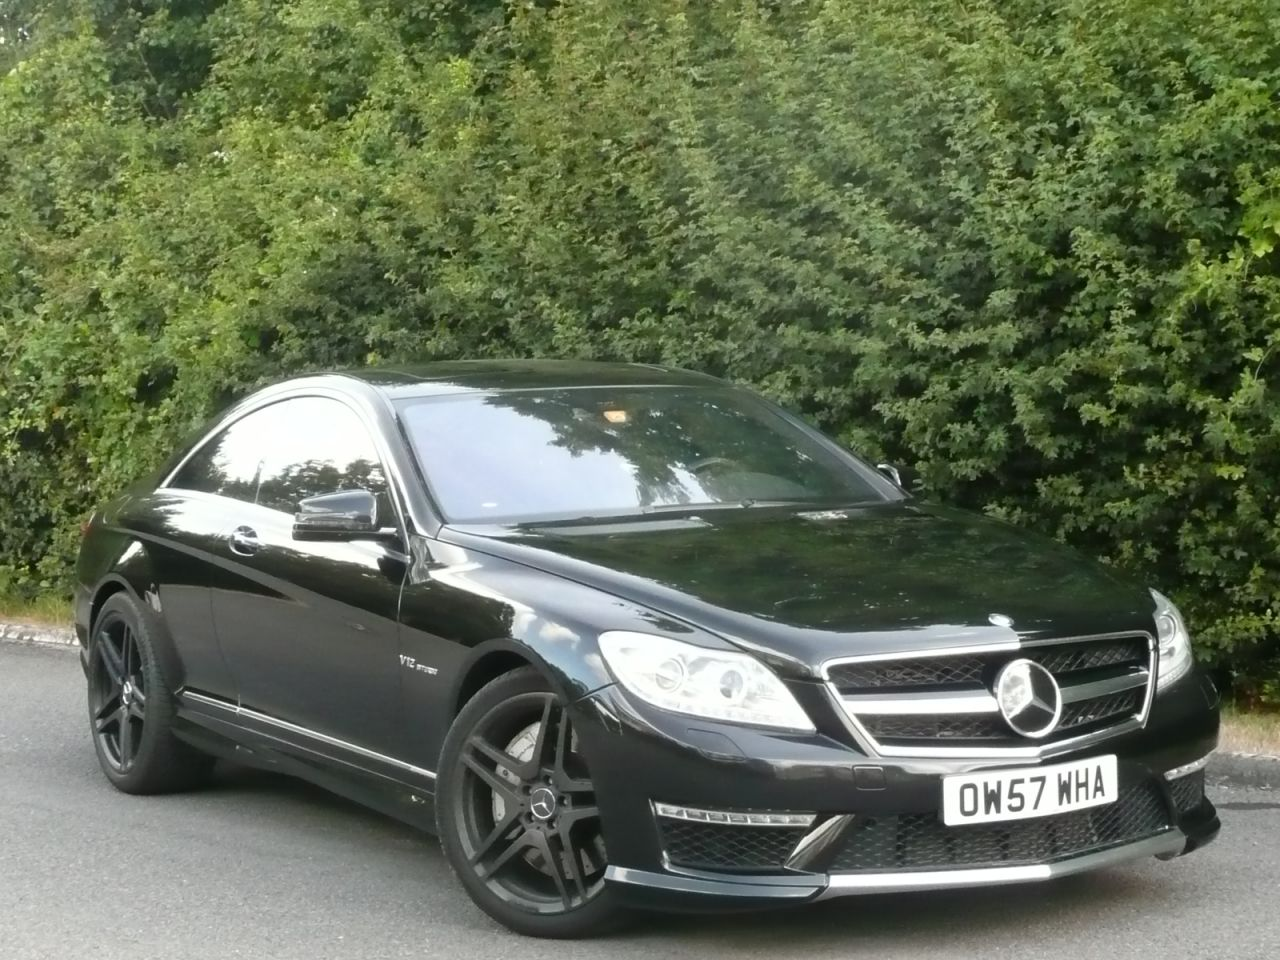 Mercedes Benz Cl 65 Amg Mercedes Benz Cl65 Amg V12 Bi Turbo 604 Bhp